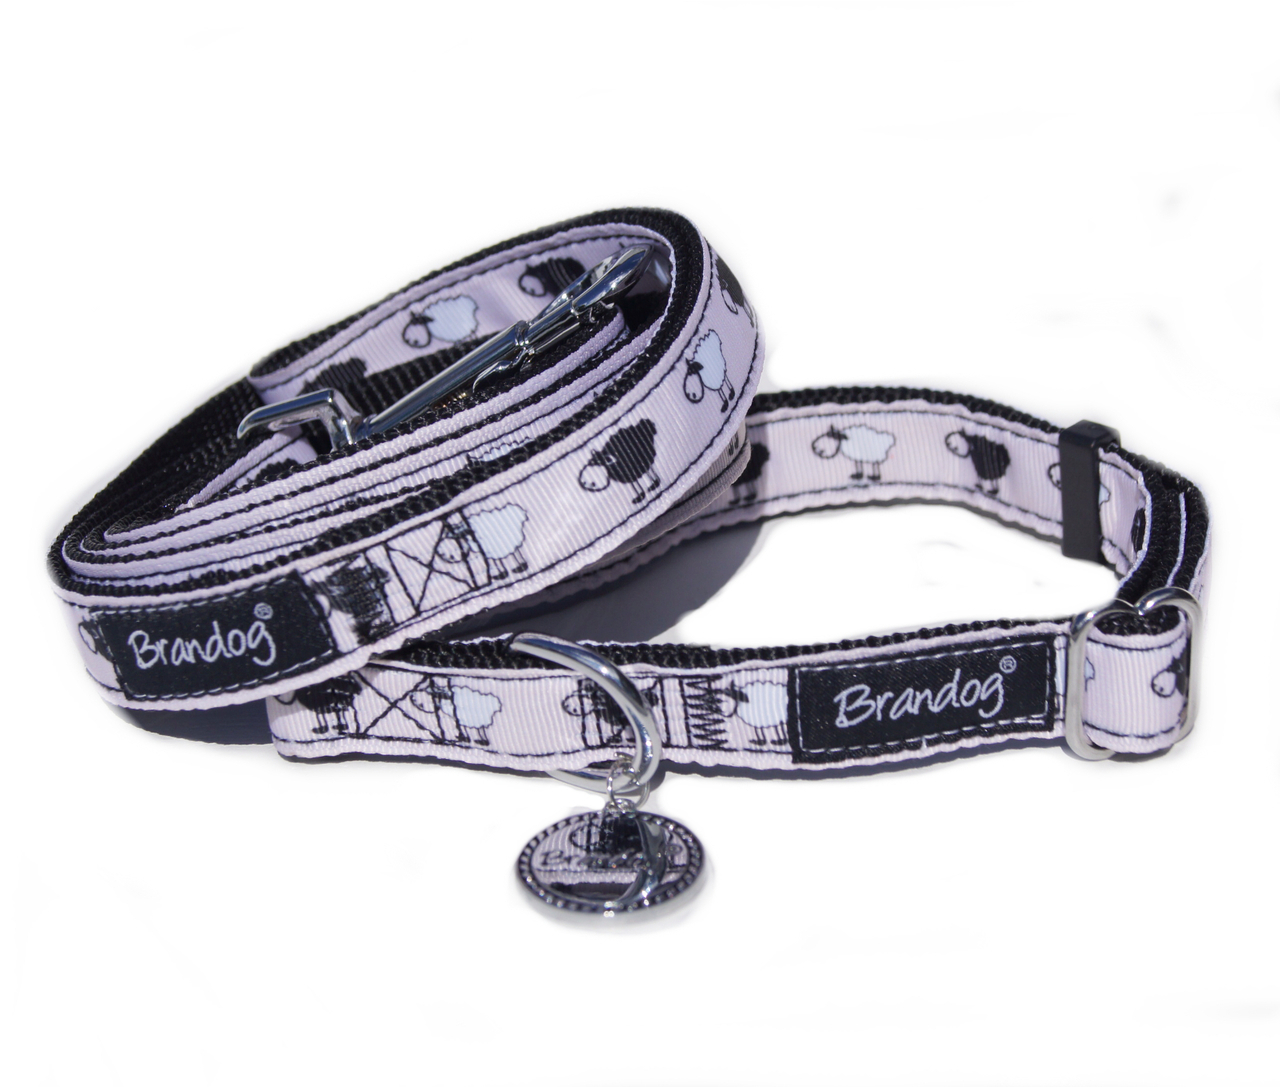 Brandog ''Black Sheep'' Collar + Leash Set